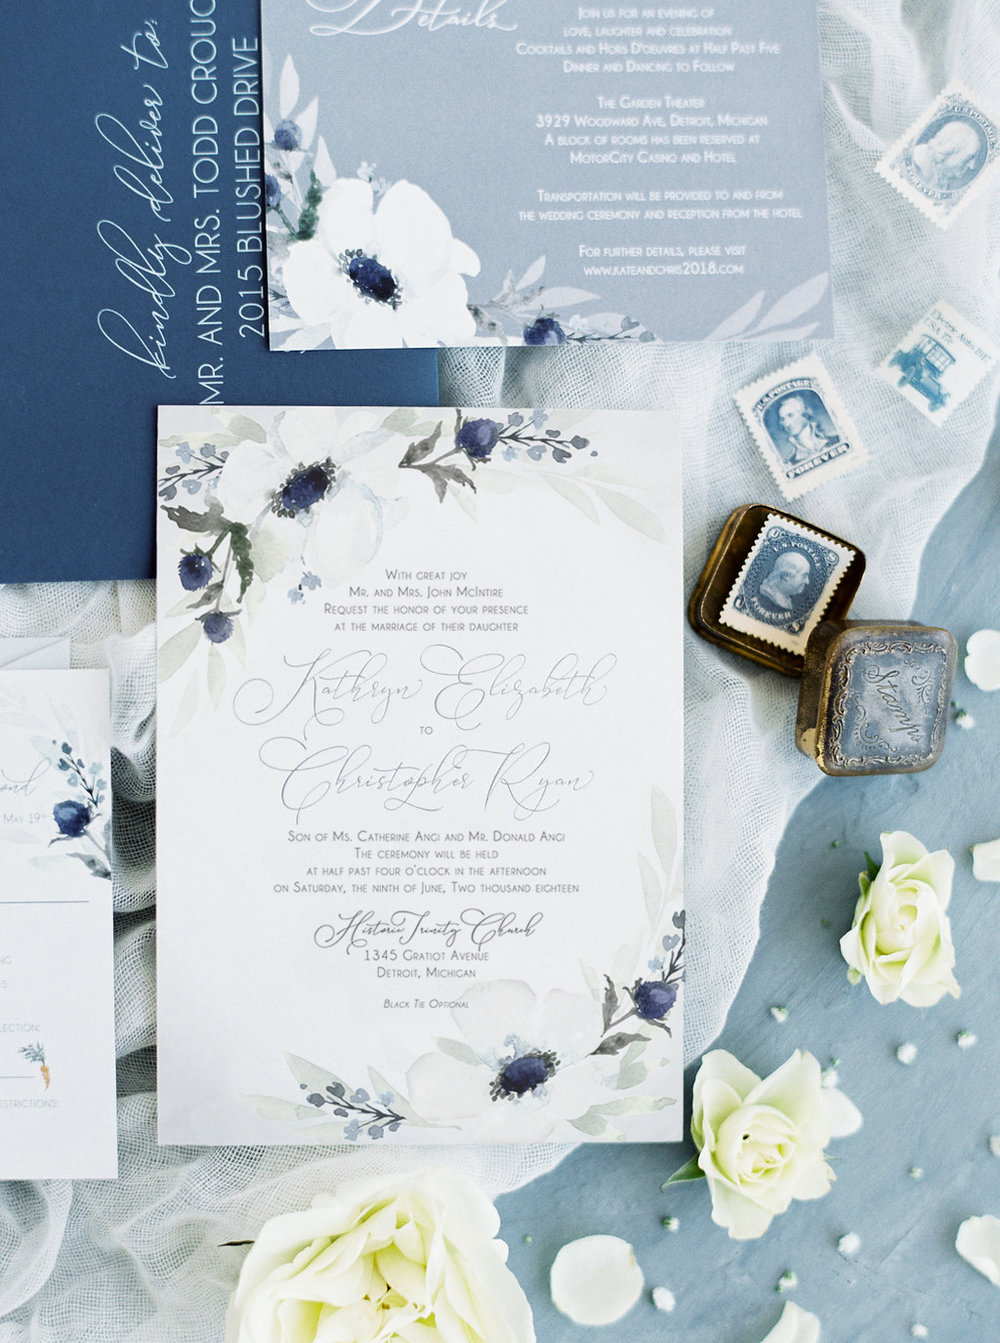 Copy of Blue Watercolor Floral Wedding INvitations, Anemone Wedding Invitations by Blushed Design: Wedding Invitations and Fine ARt Portraits